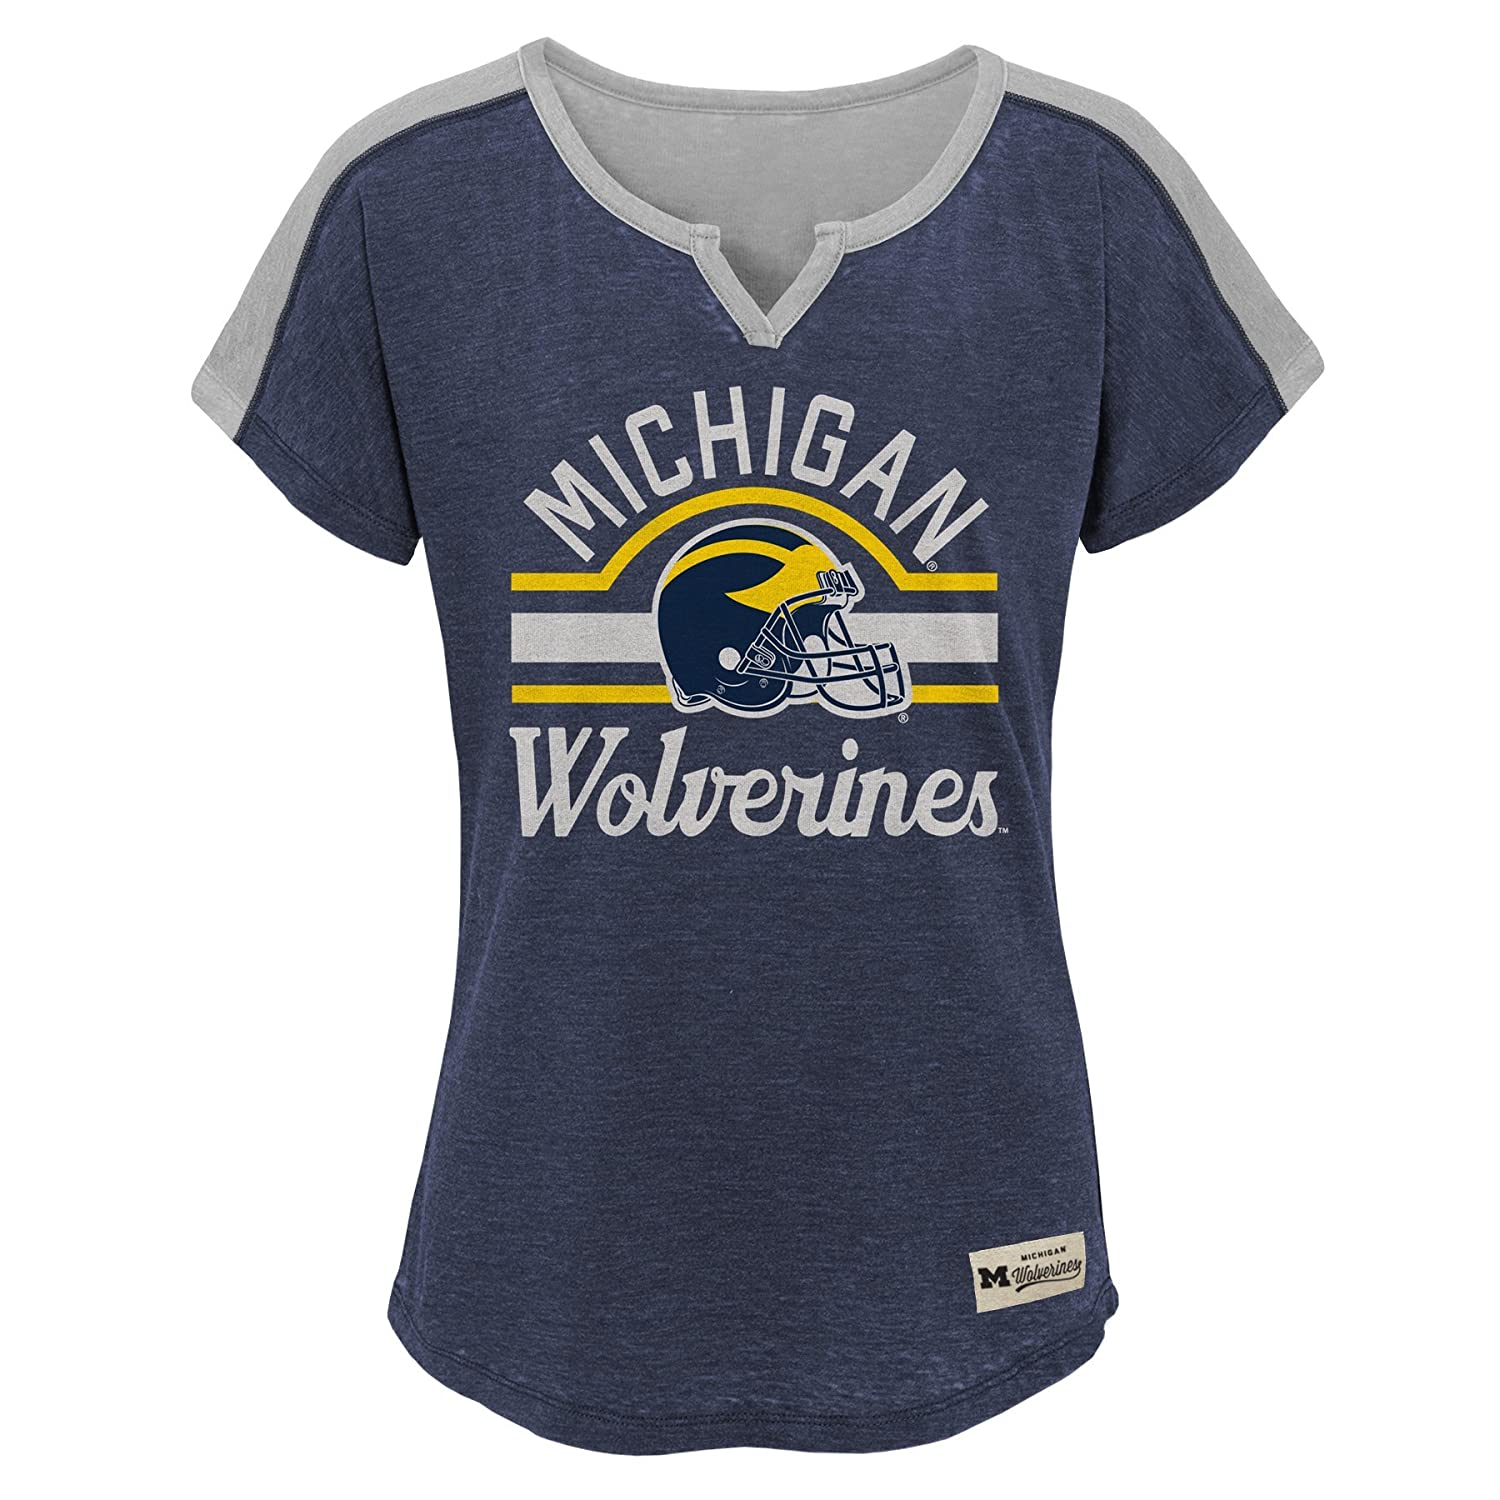 NCAA by Outerstuff NCAA Michigan Wolverines Youth Girls Tribute Raglan Football Tee 16 Dark Navy Youth X-Large